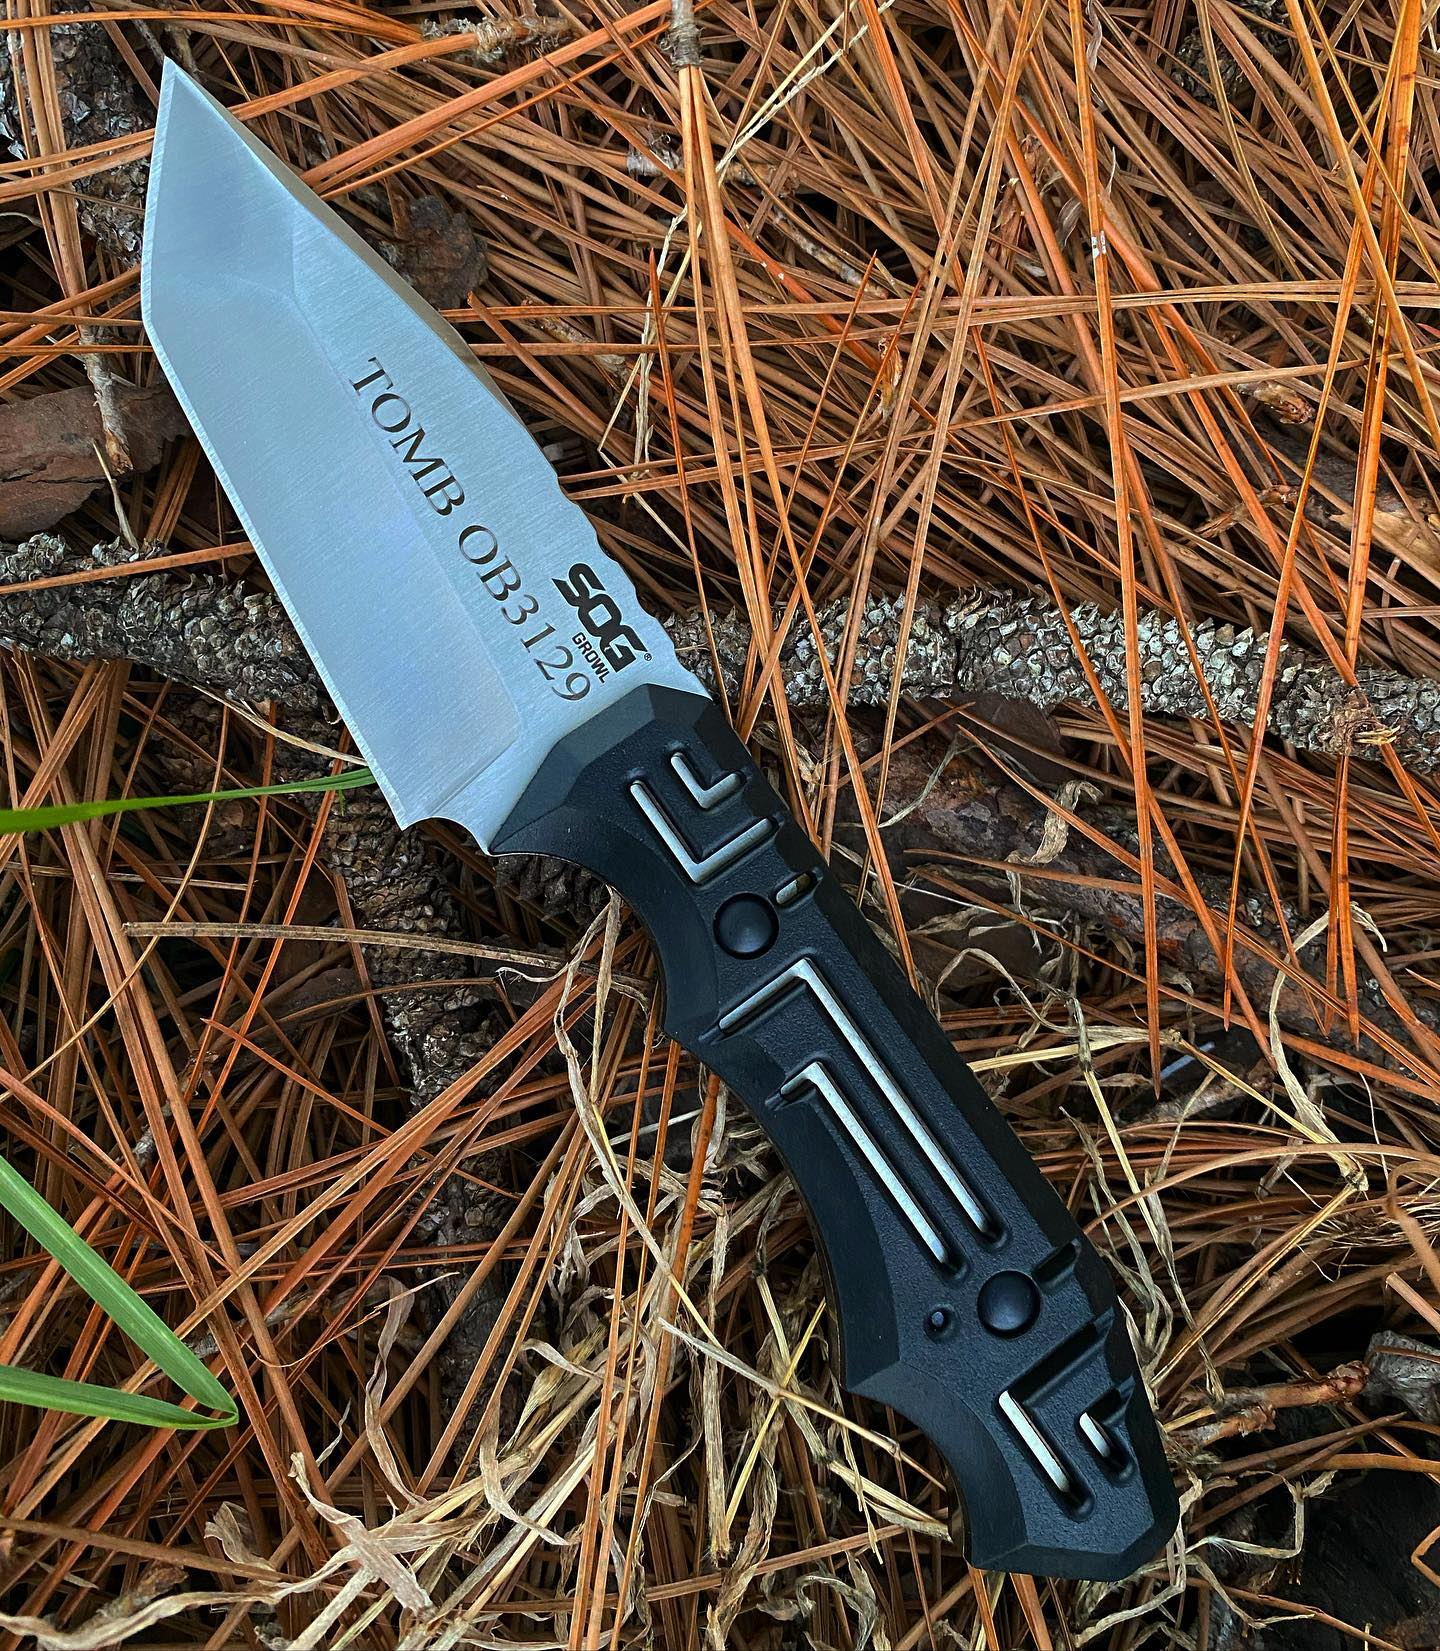 SOG Growl fixed blade knife with kydex sheath JB02-K was just engraved for our customer.  Make your loved ones growl w happiness when they open up this gift! #soggrowl #growlfixedblade #kydexsheath #JB02-K